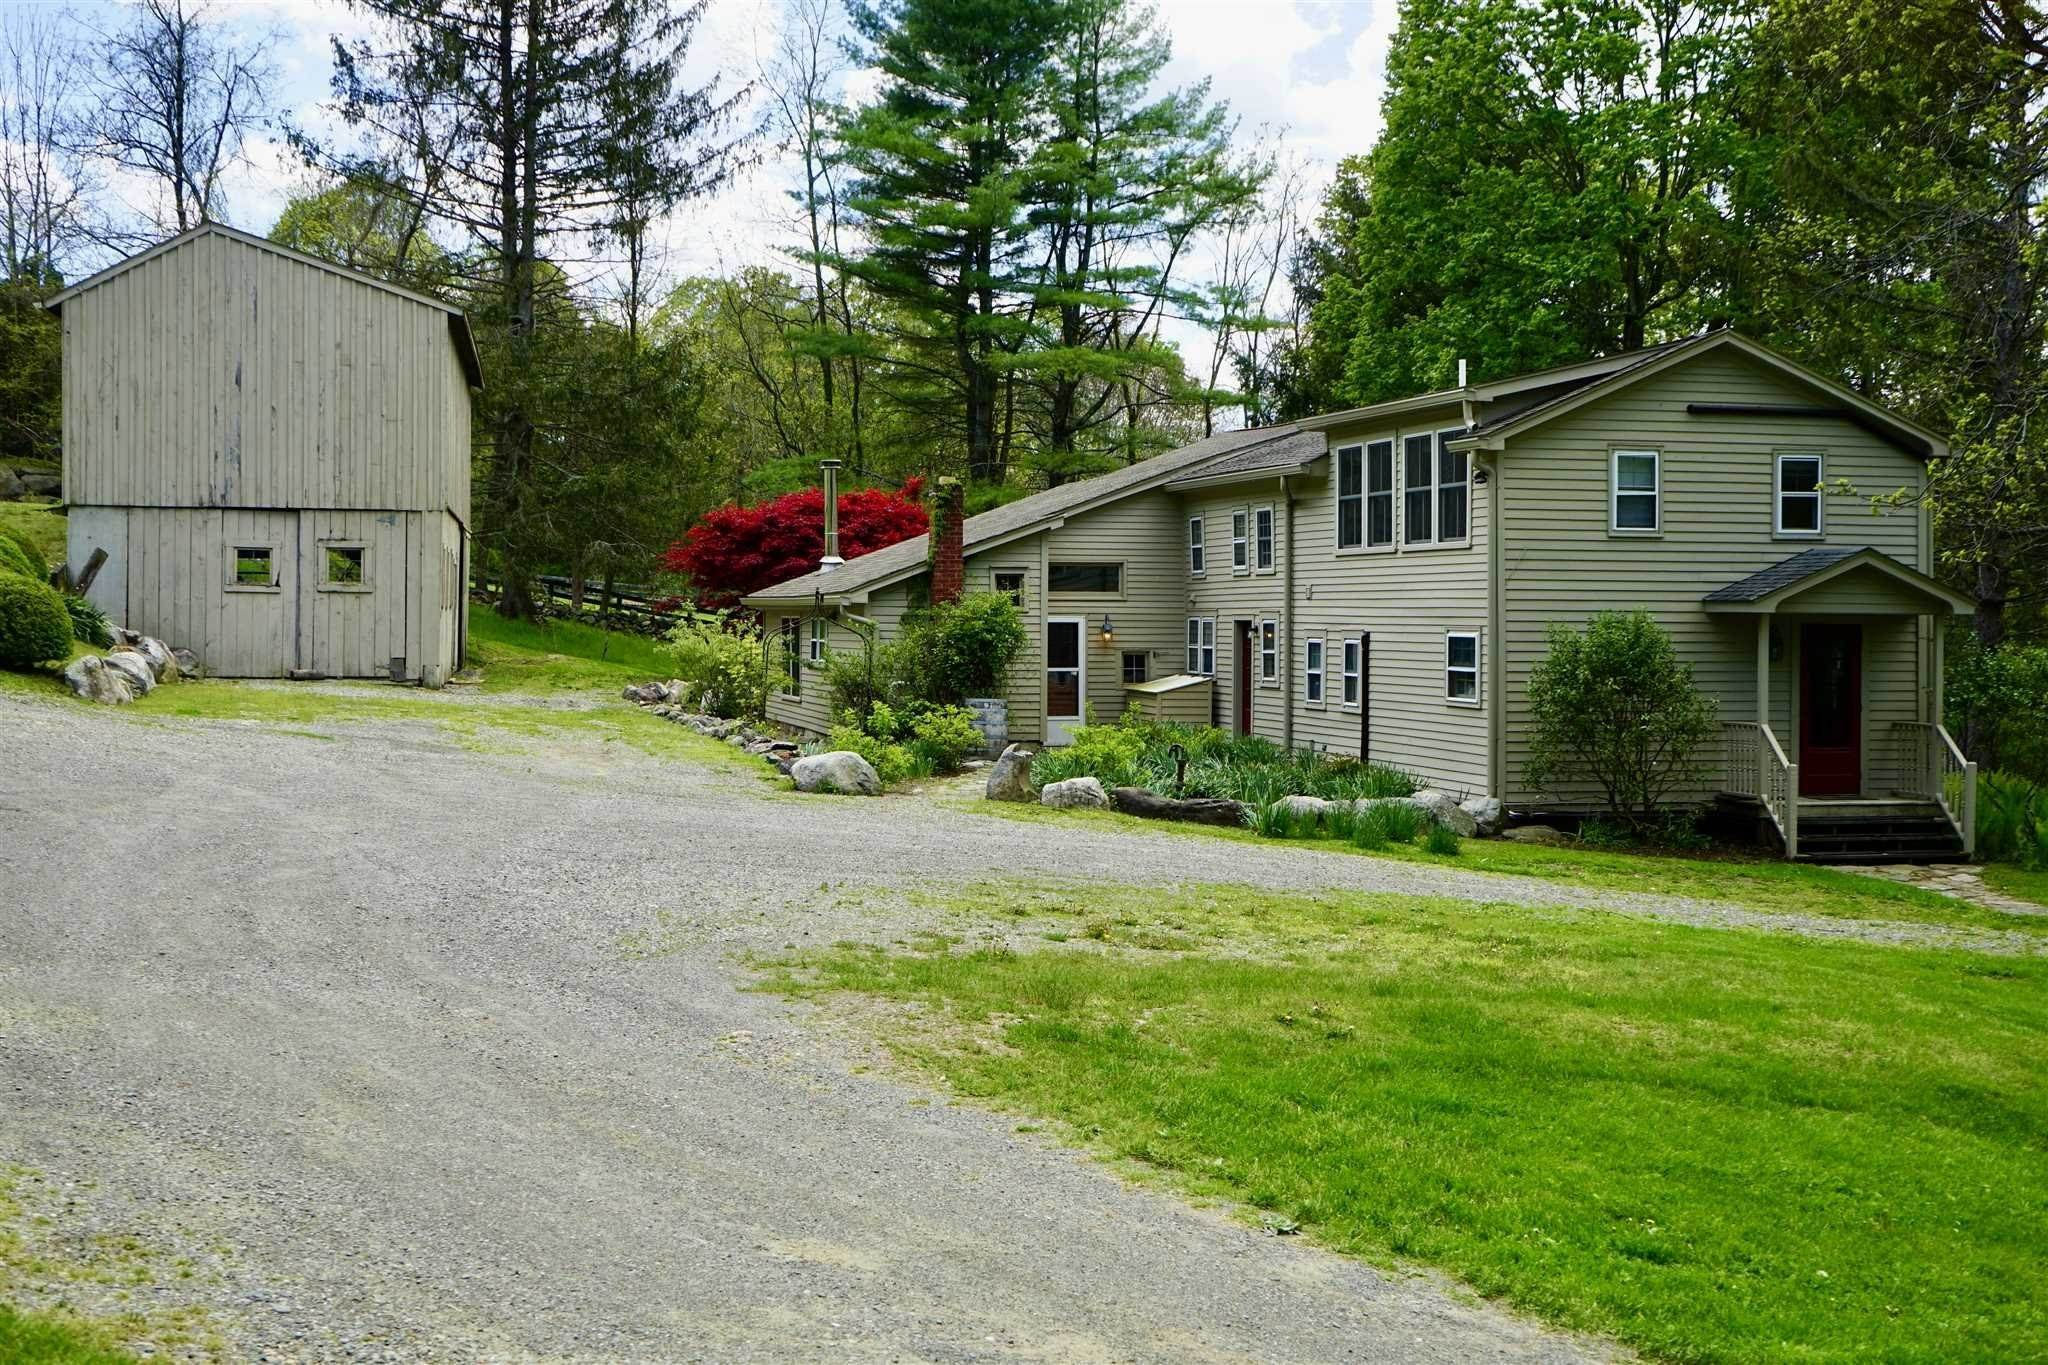 Single Family Homes for Sale at 242 HUNNS LAKE Road Stanfordville, New York 12581 United States